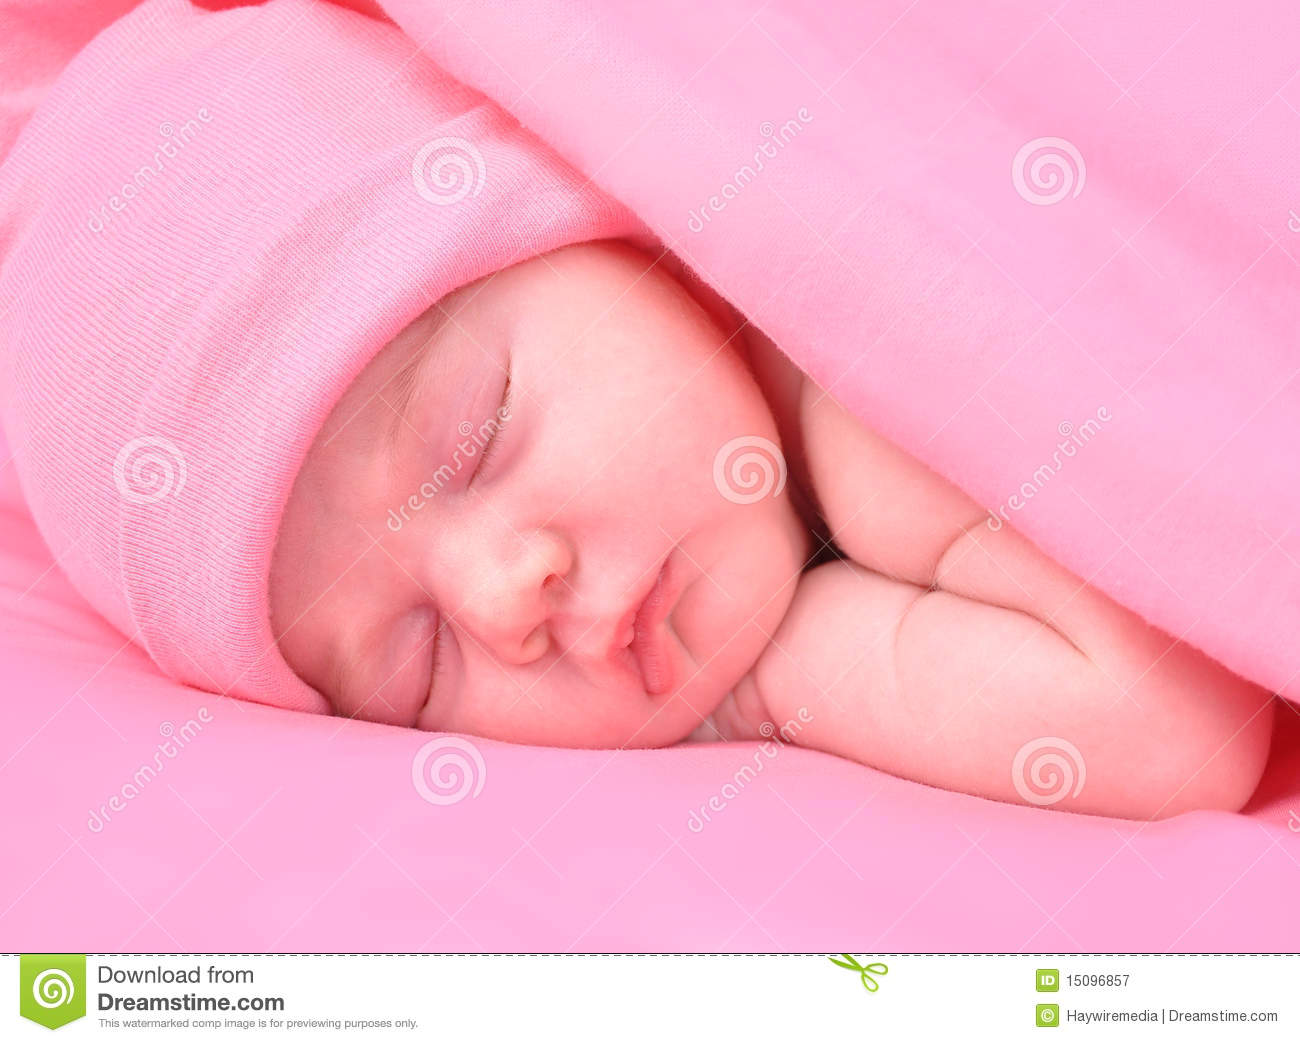 Newborn Babies With Blue Eyes Newborn Baby Girl Sleeping With Blanket And Hat Royalty